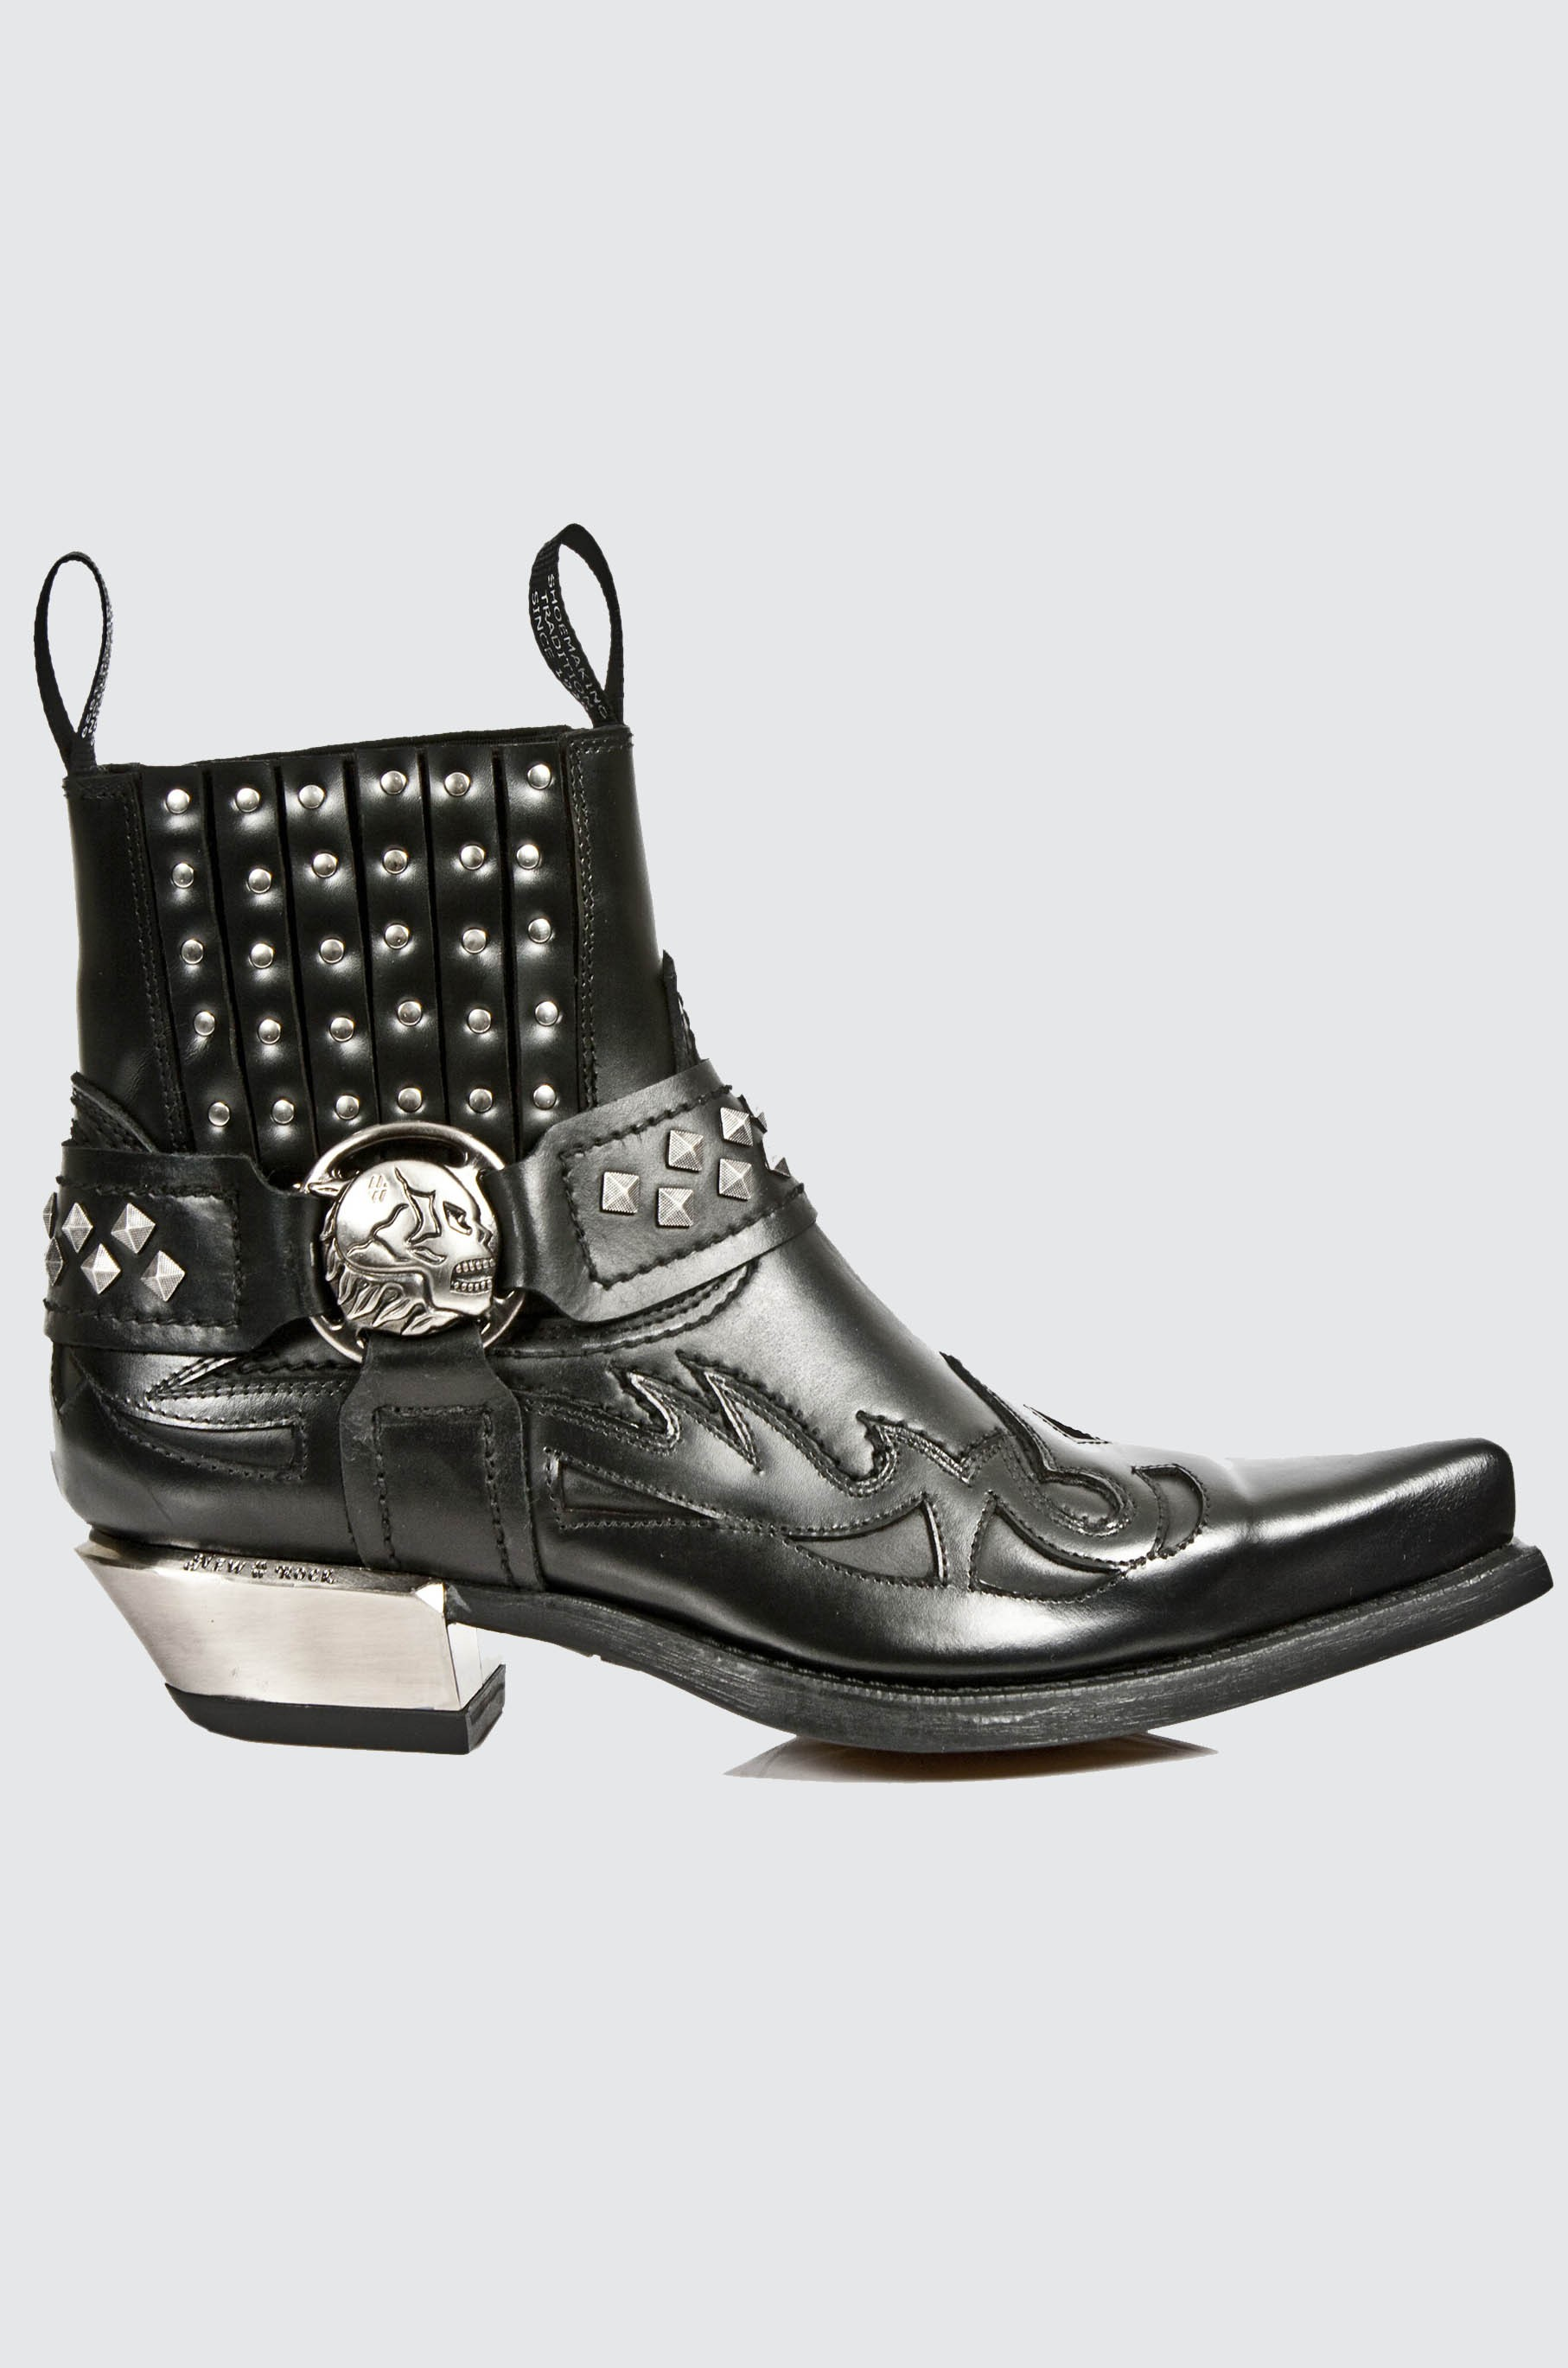 NEW ROCK M.7950-S1 Black Ankle Boots Western Goth Strap Skull Stud Metal